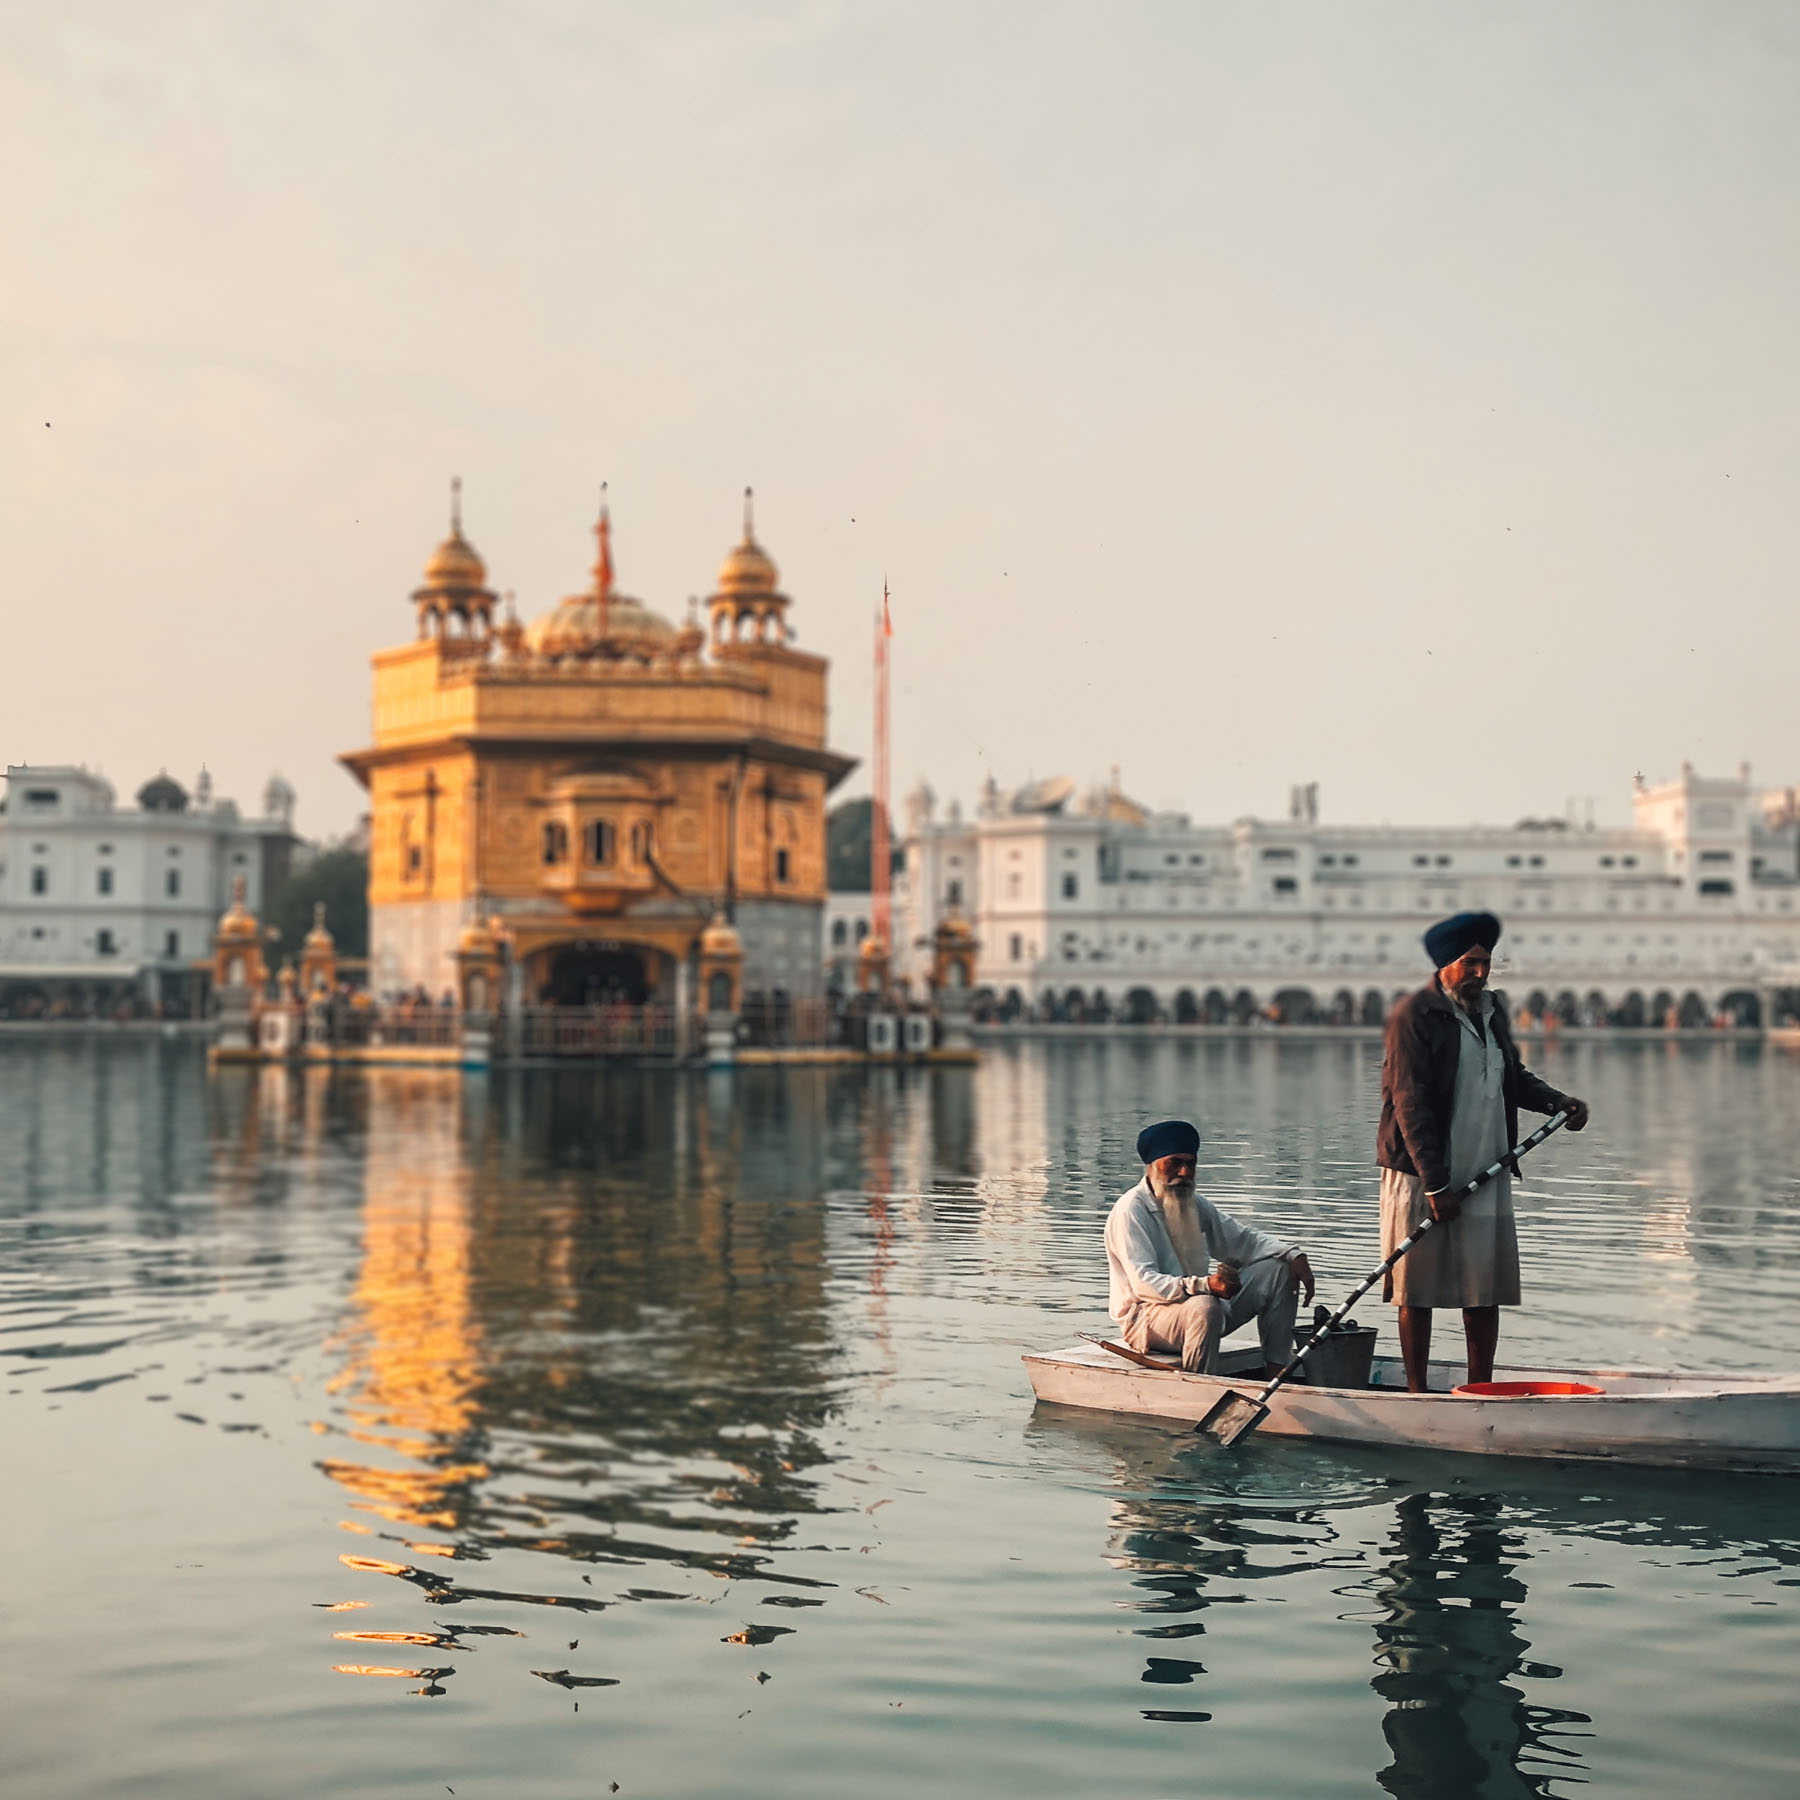 Serene beauty in silence. 